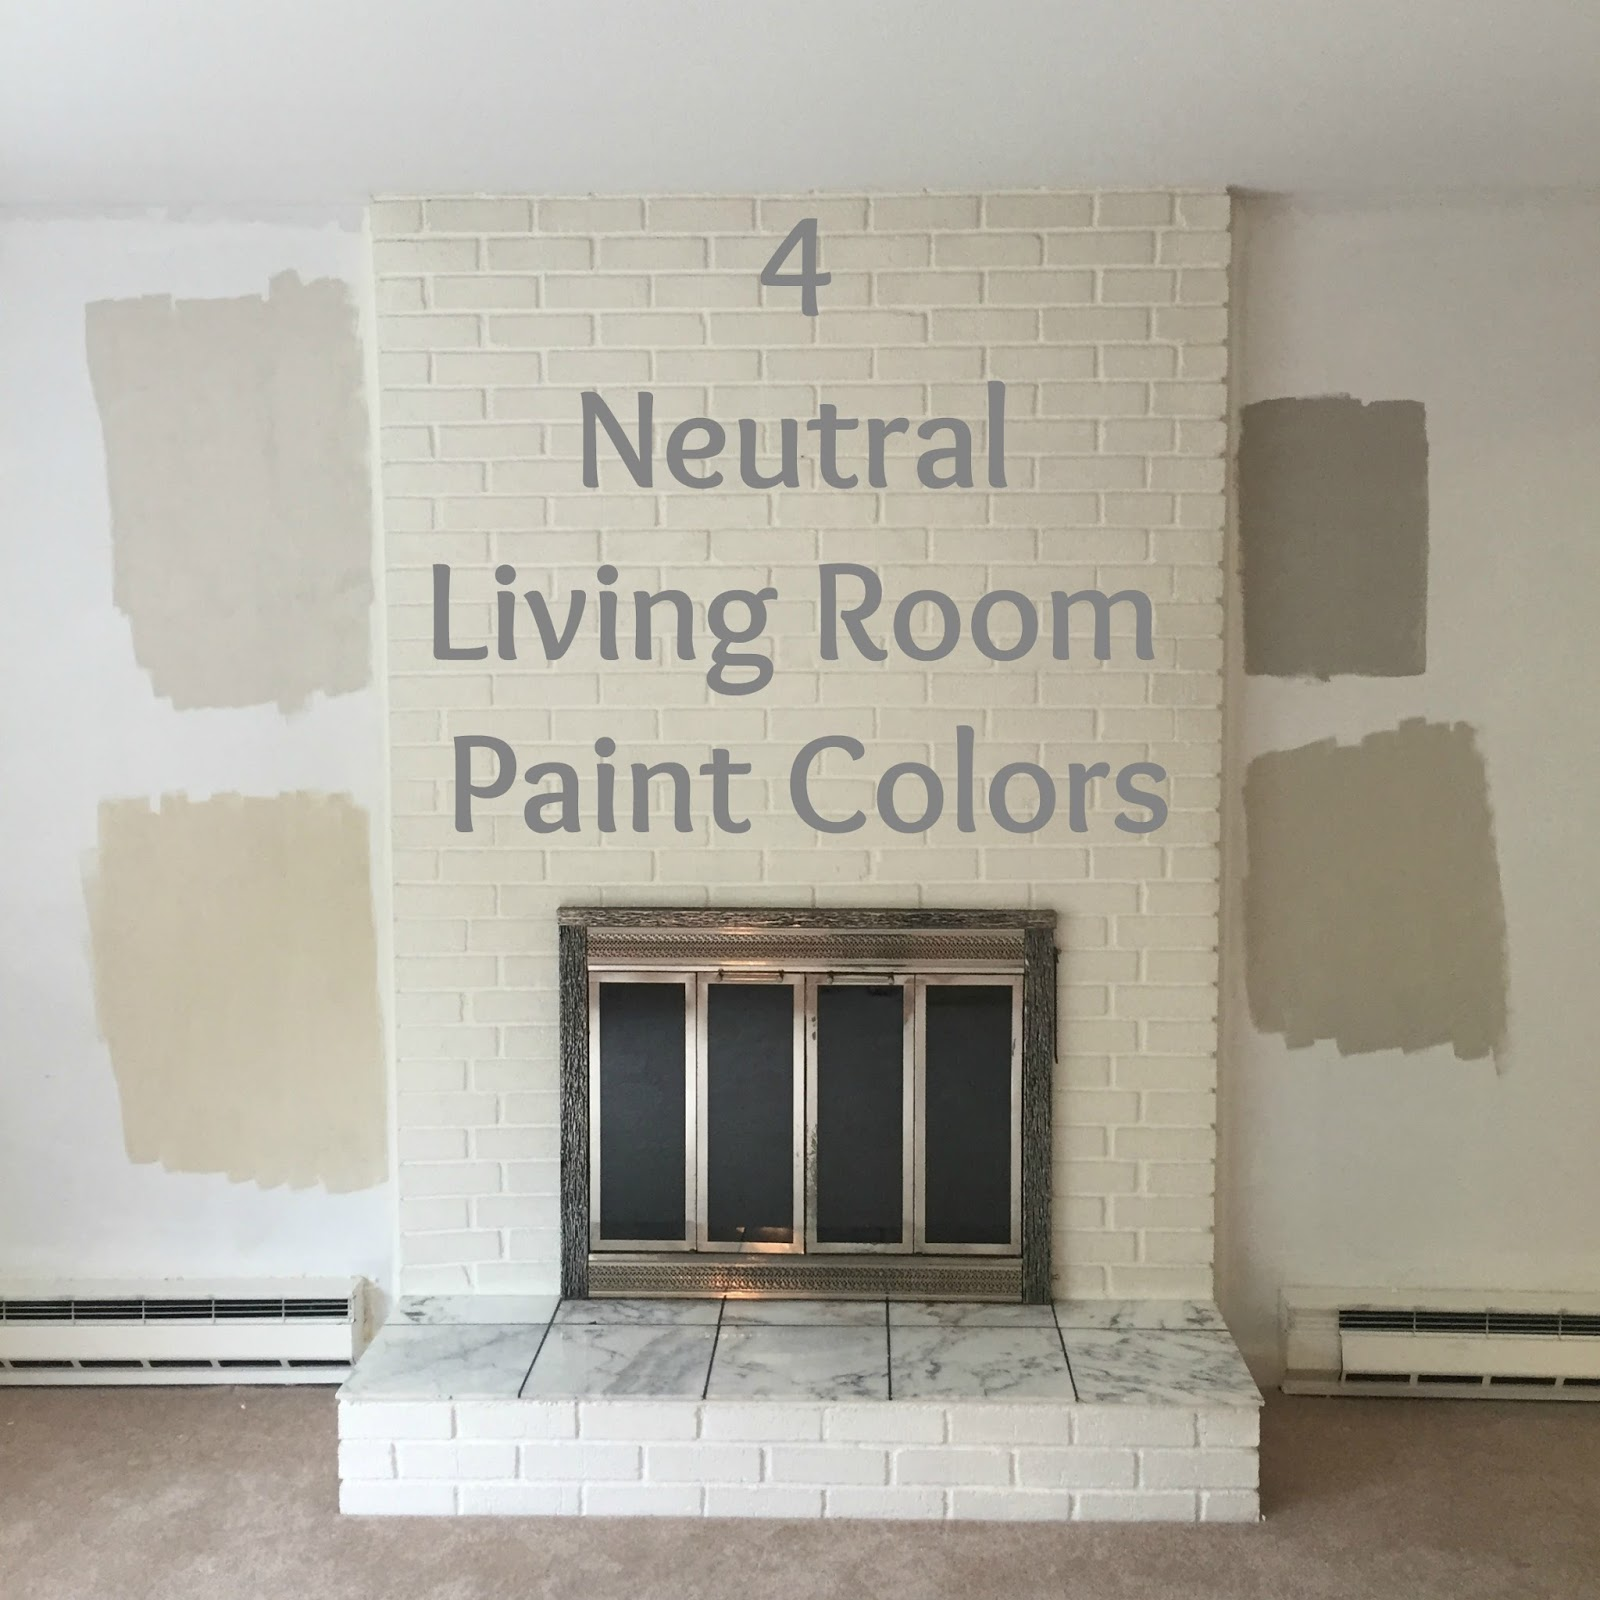 Neutral paint colors for living room for Popular neutral paint colors for living rooms